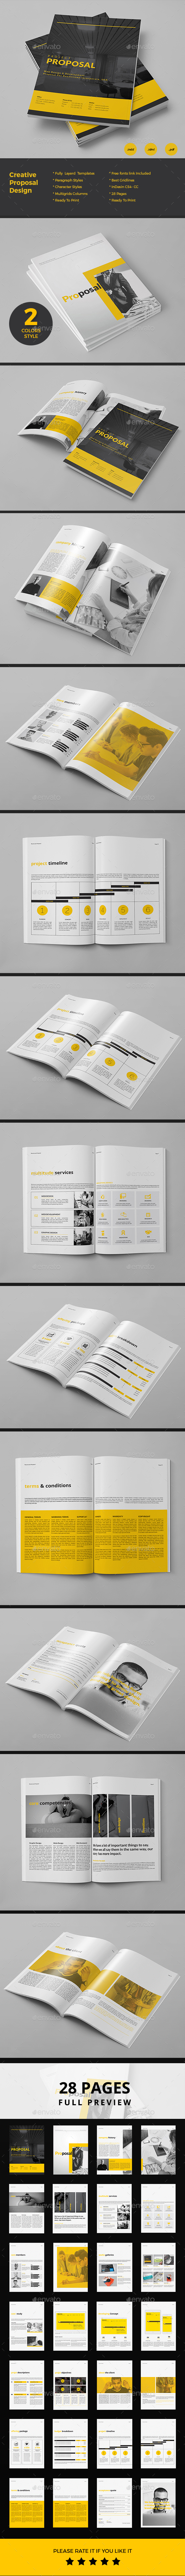 Proposal — InDesign INDD #project porposal #modern • Available here ...